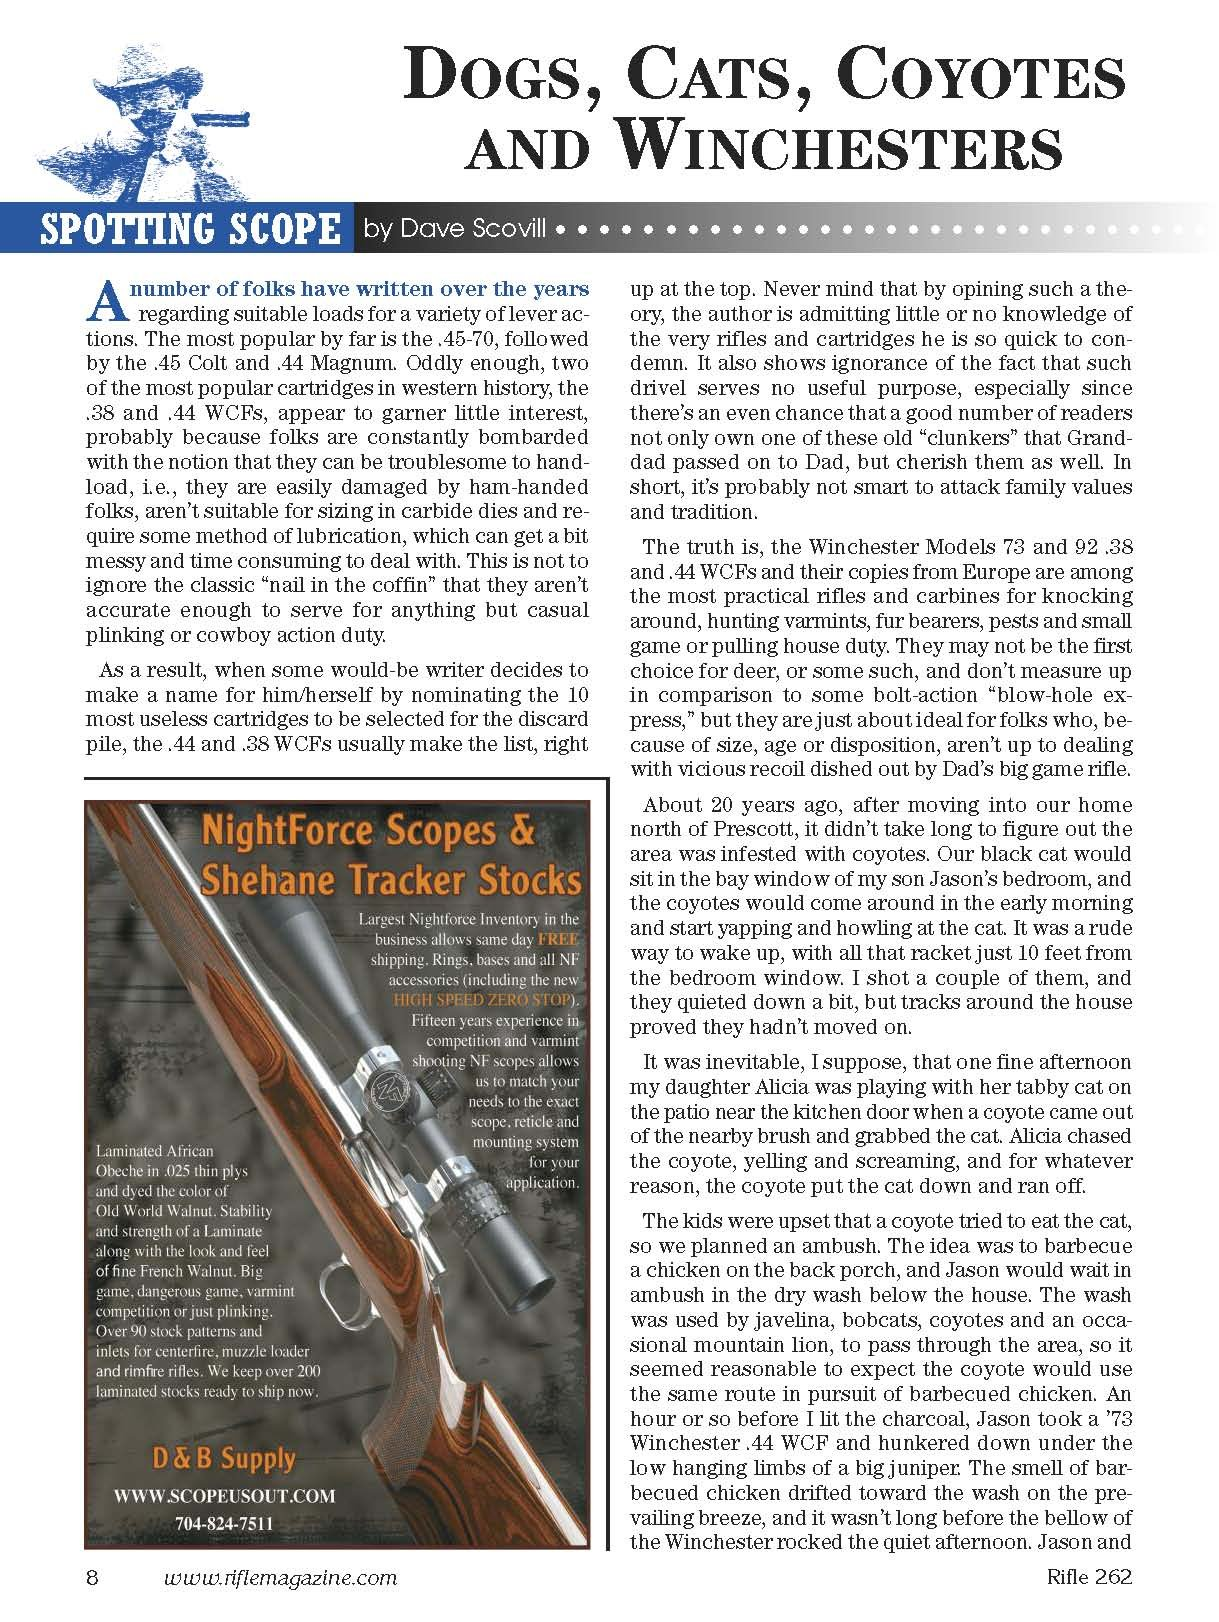 Rifle Magazine - May 2012 - Issue Number 262: Dave Scovill